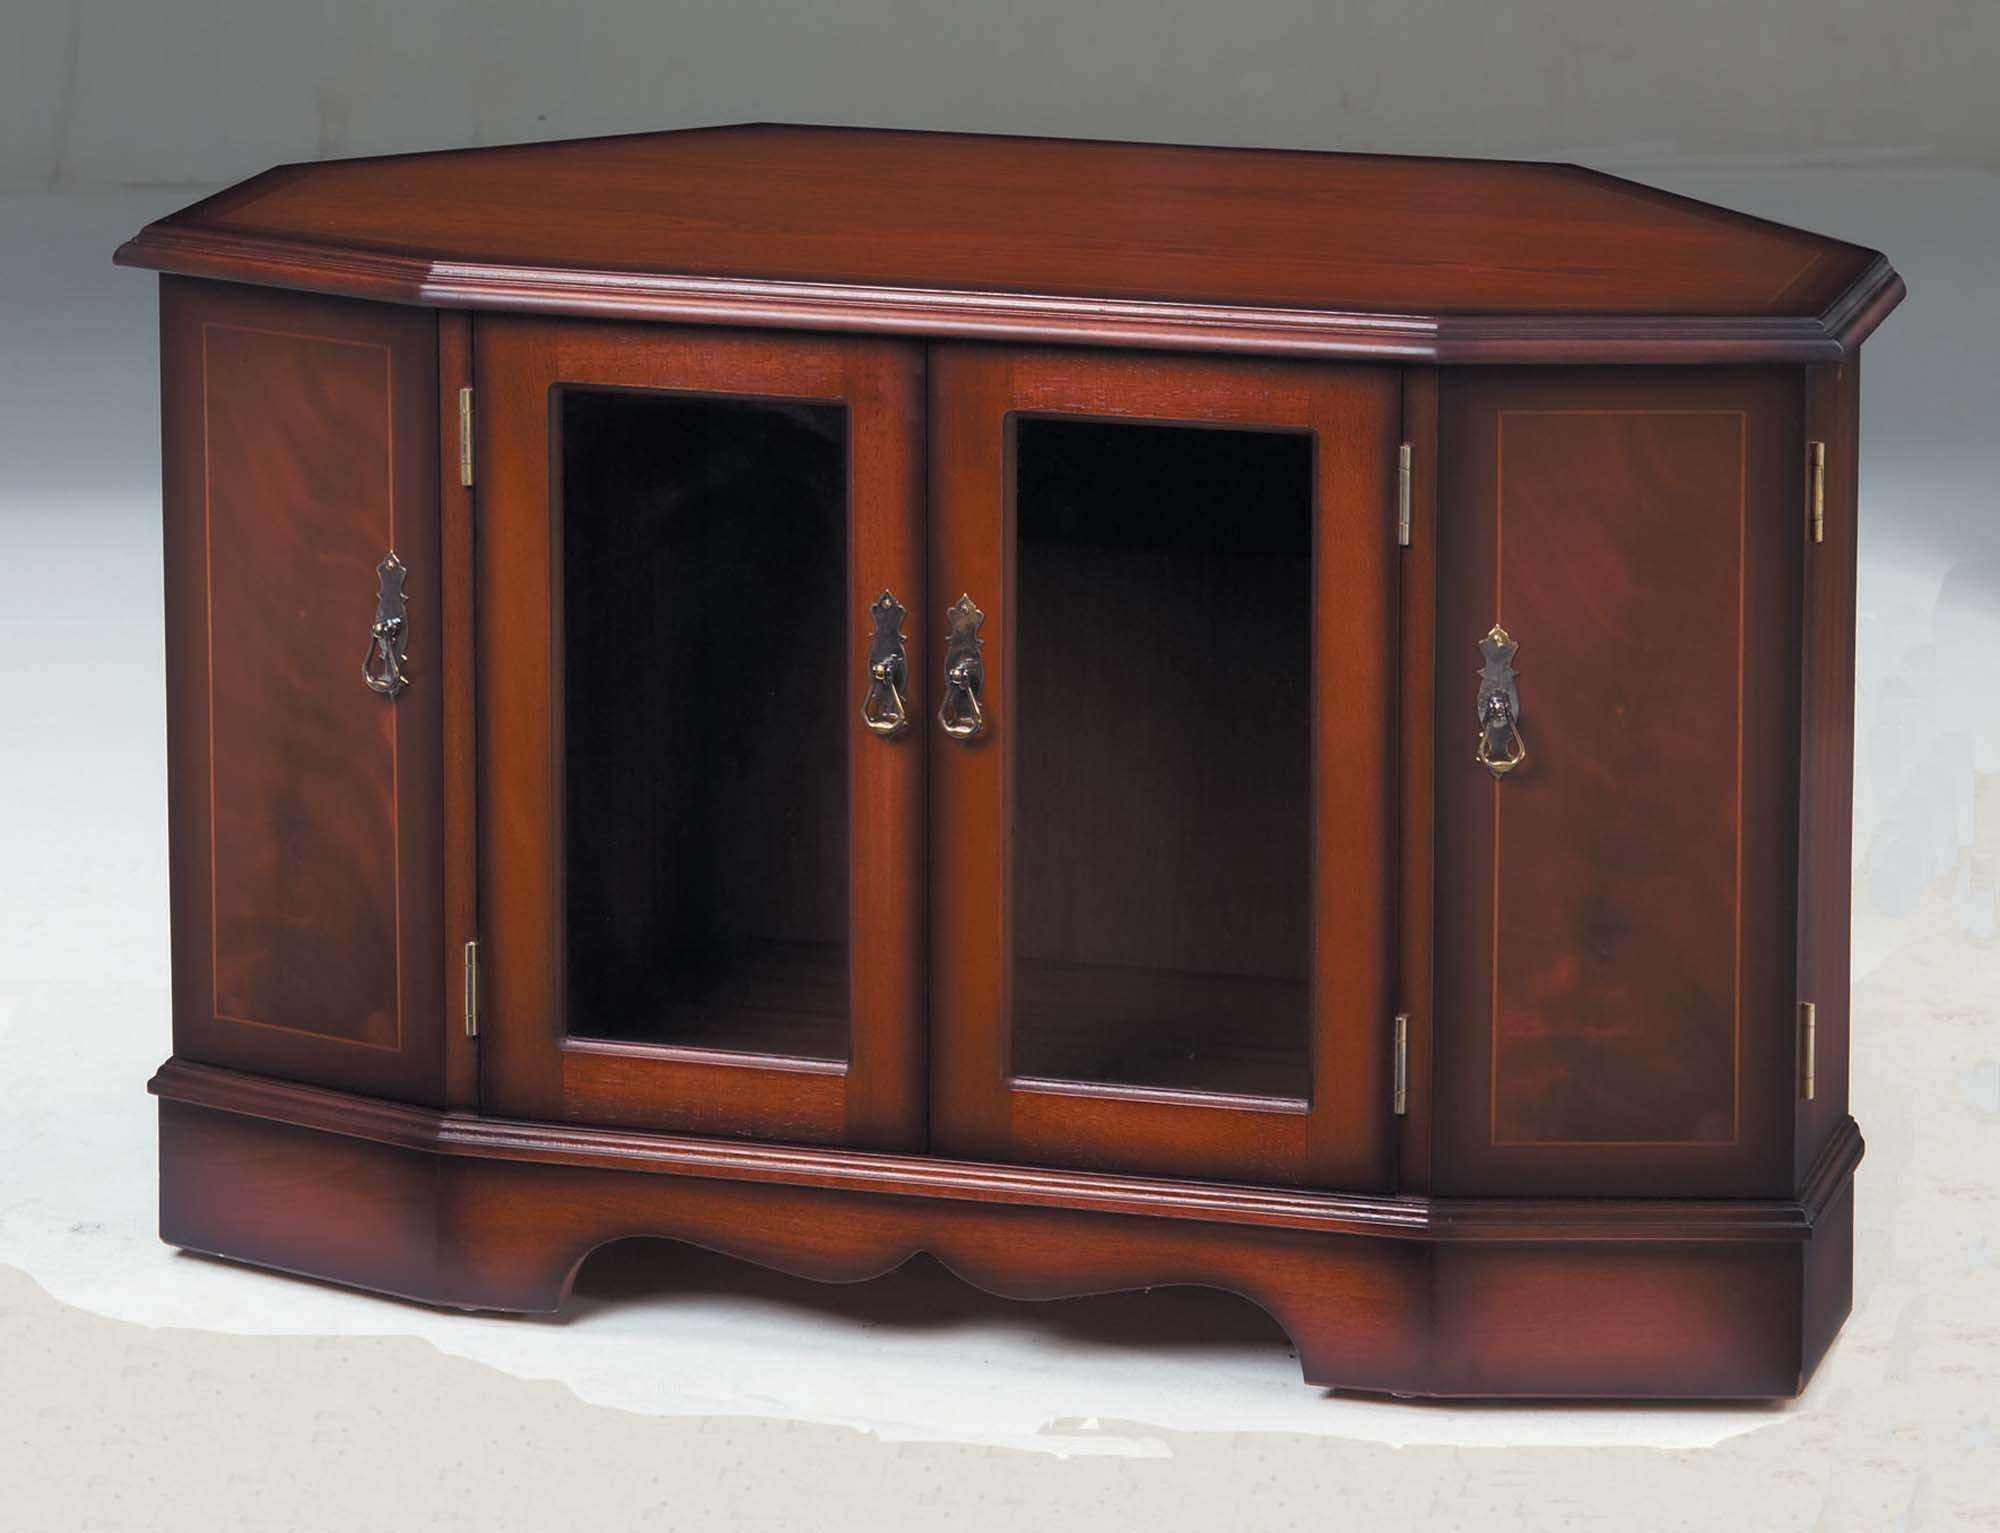 Strongbow Mahogany 1037 Corner Tv Cabinet | Tr Hayes – Furniture Intended For Mahogany Tv Stands (View 15 of 15)